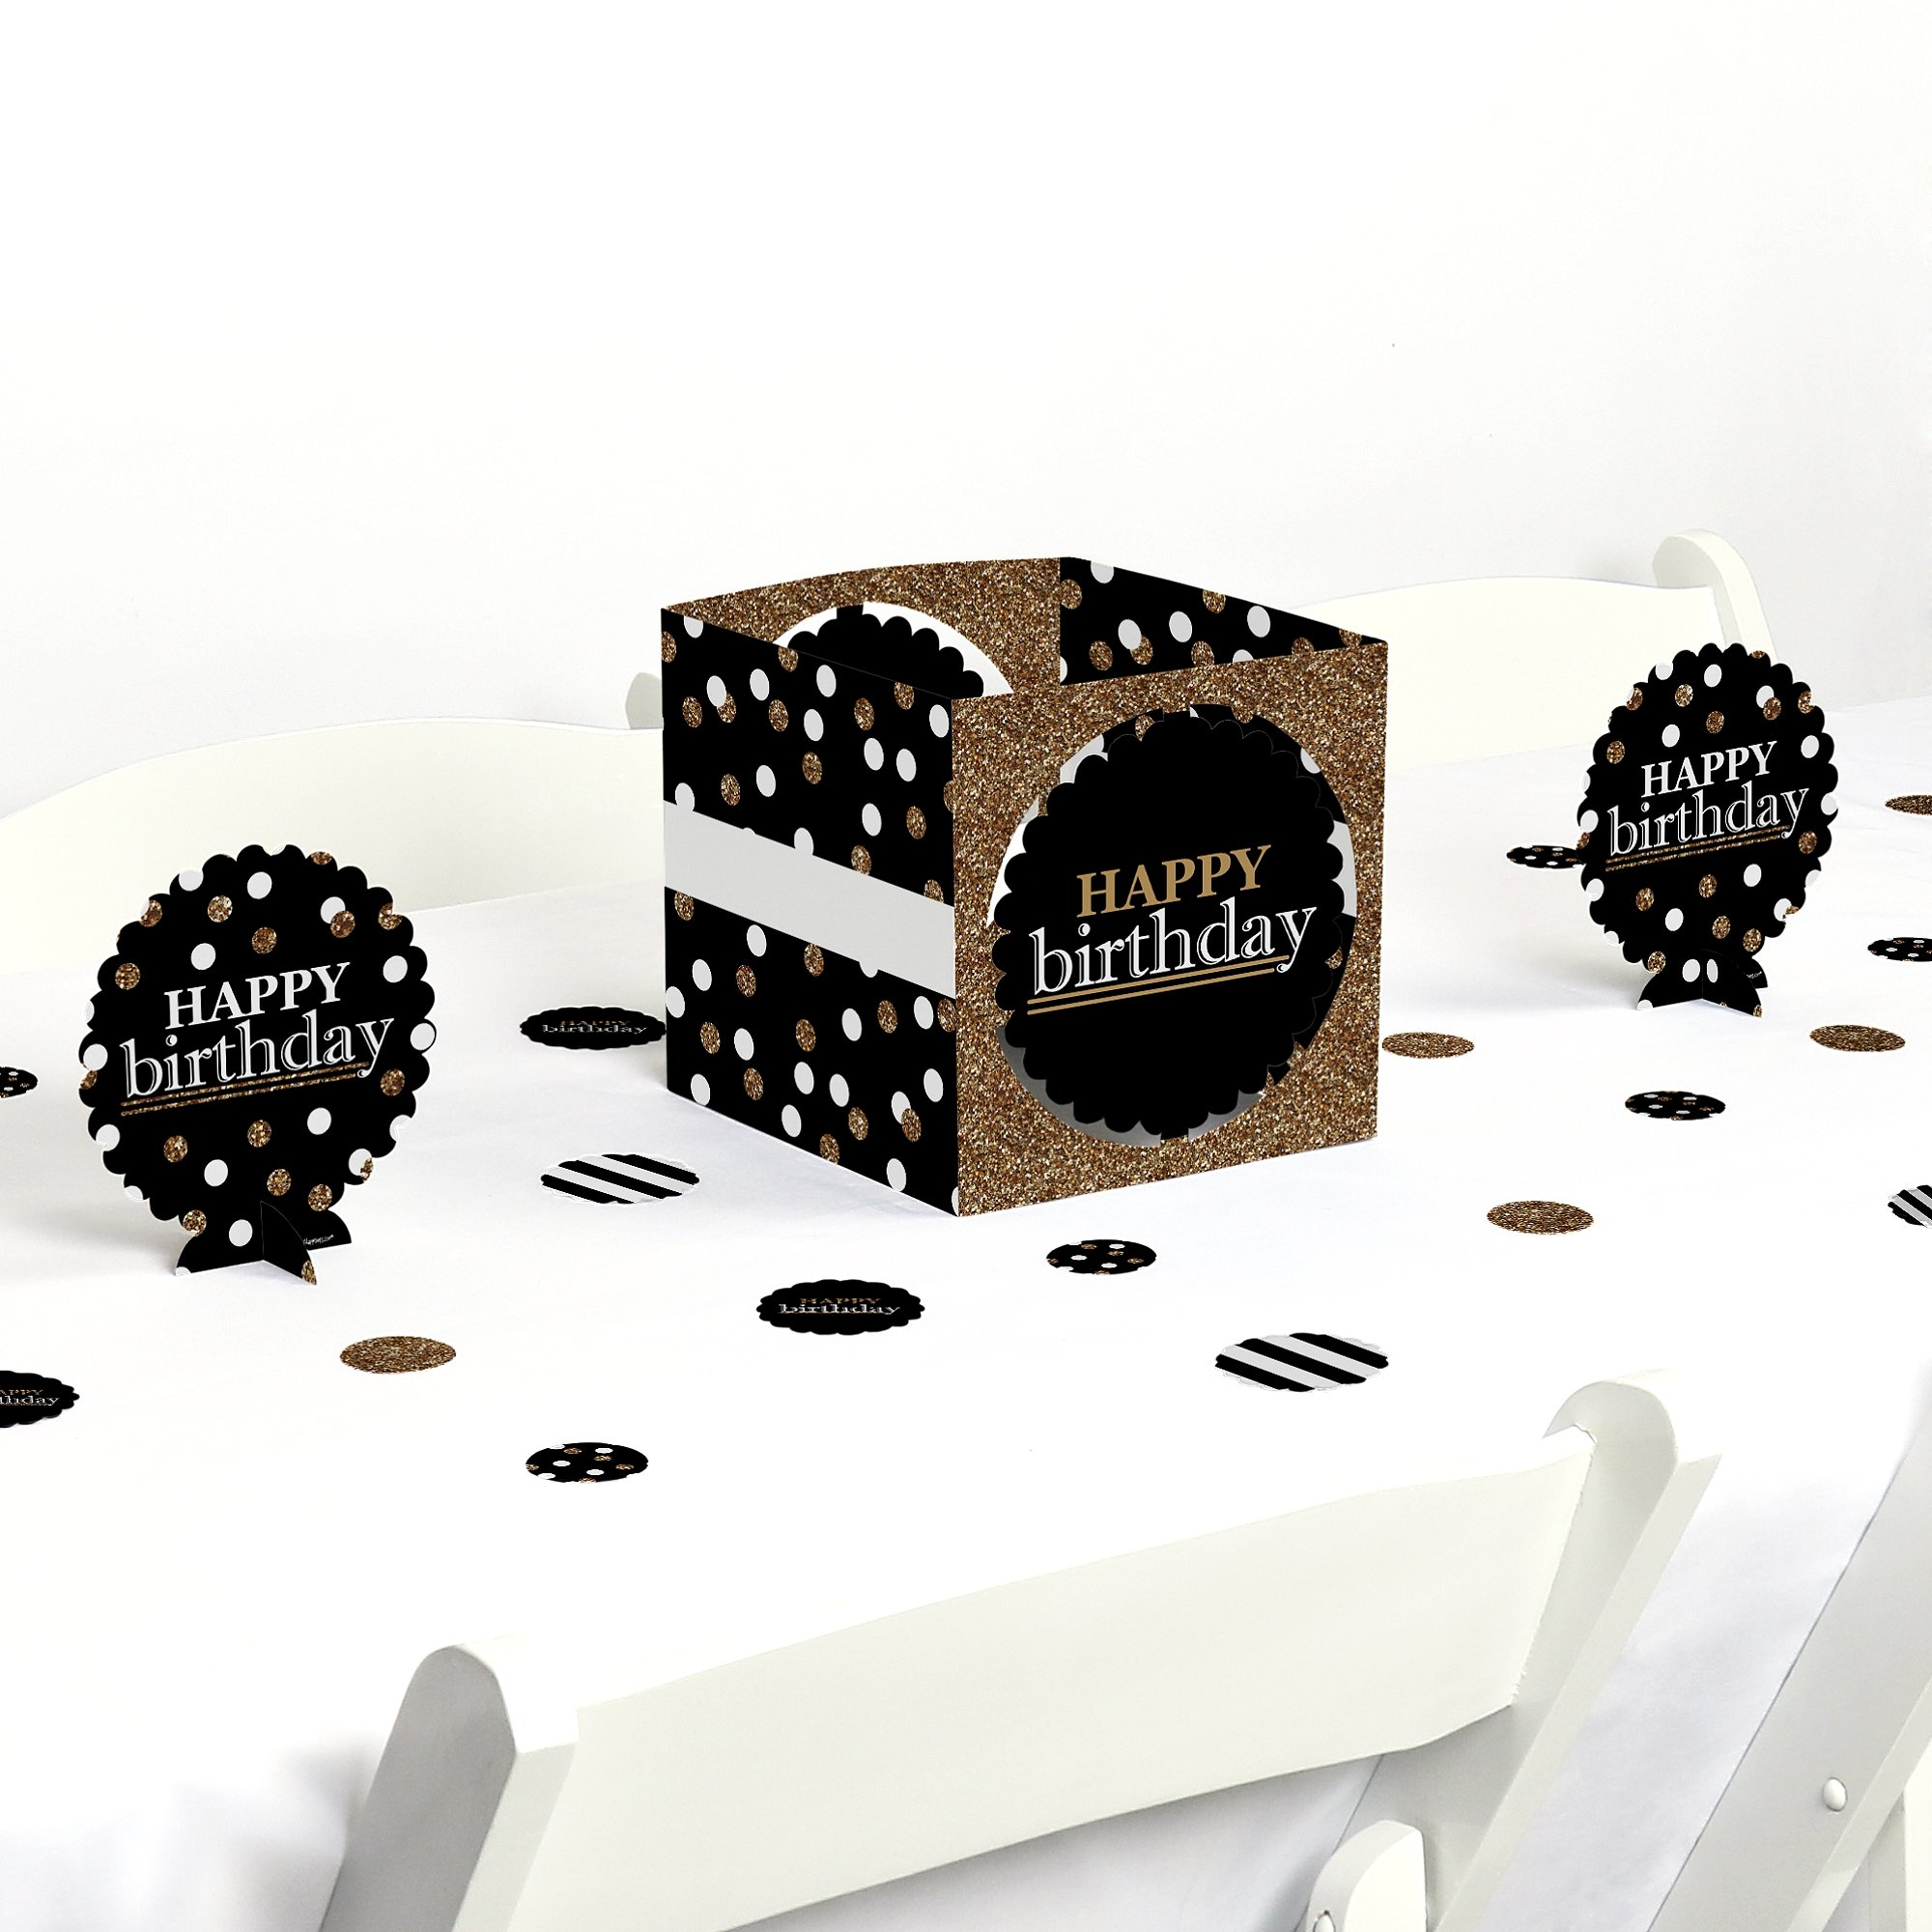 Adult Happy Birthday - Gold - Birthday Party Centerpiece & Table Decoration Kit